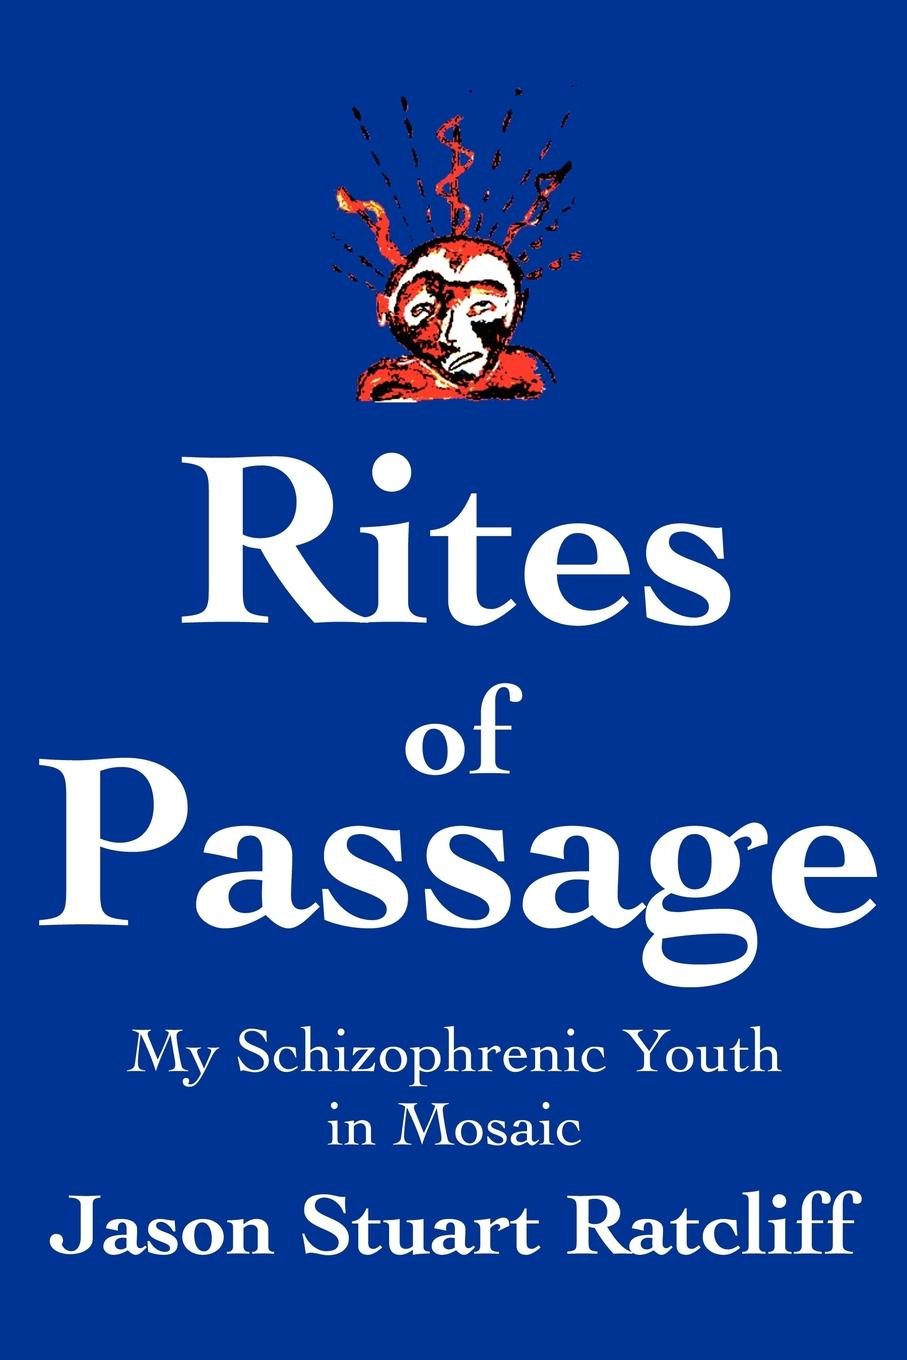 Jason Stuart Ratcliff Rites of Passage. My Schizophrenic Youth in Mosaic